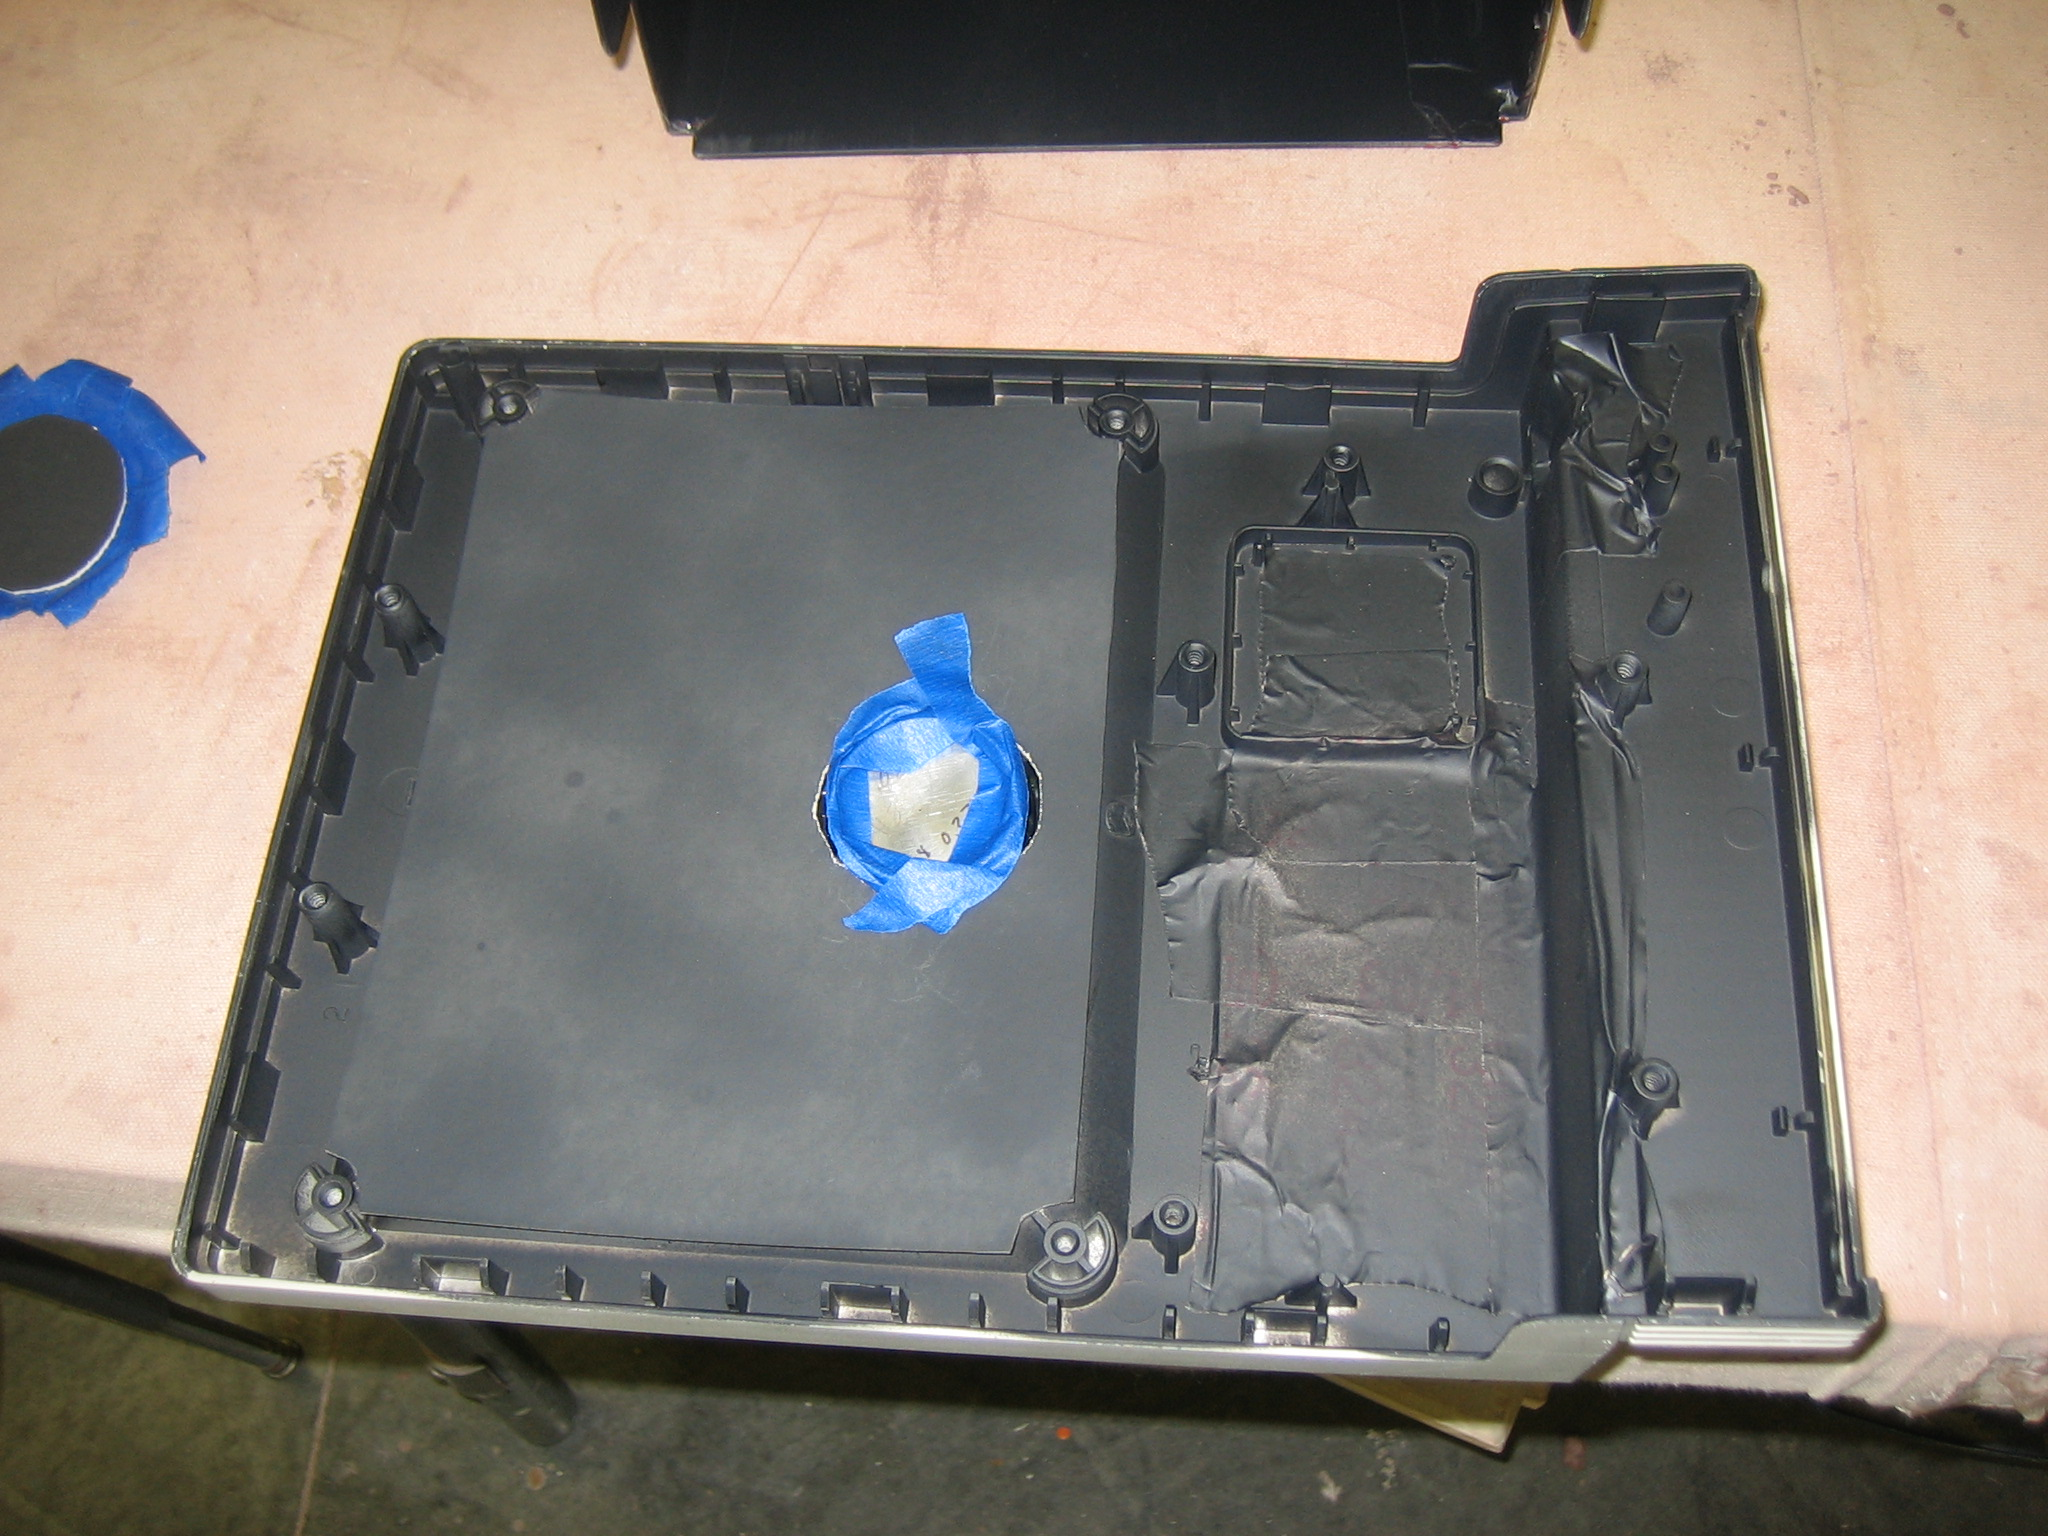 Picture of Epoxy a Piece of Matteboard to the Screen Opening.